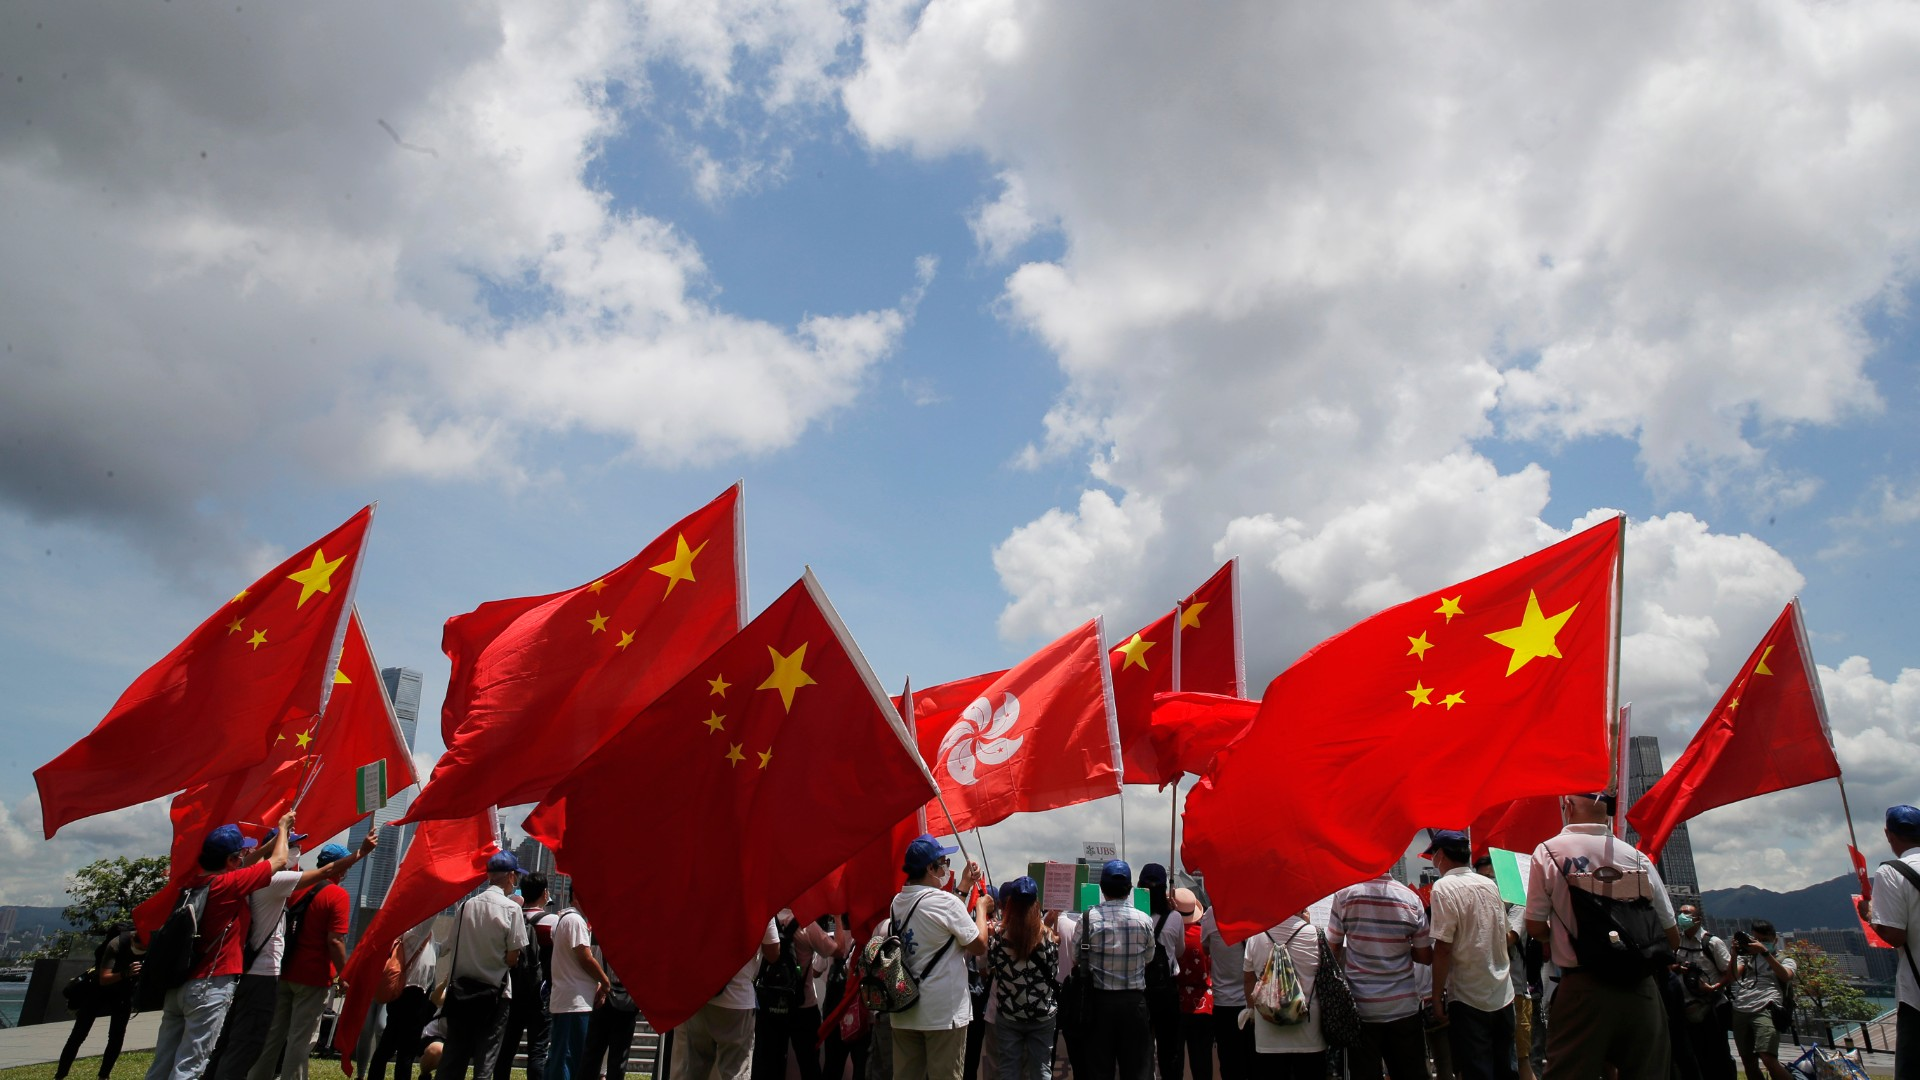 Pro-China supporters hold Chinese and Hong Kong national flags during a rally to celebrate the approval of a national security law for Hong Kong, in Hong Kong, Tuesday, June 30, 2020. (AP Photo/Kin Cheung)